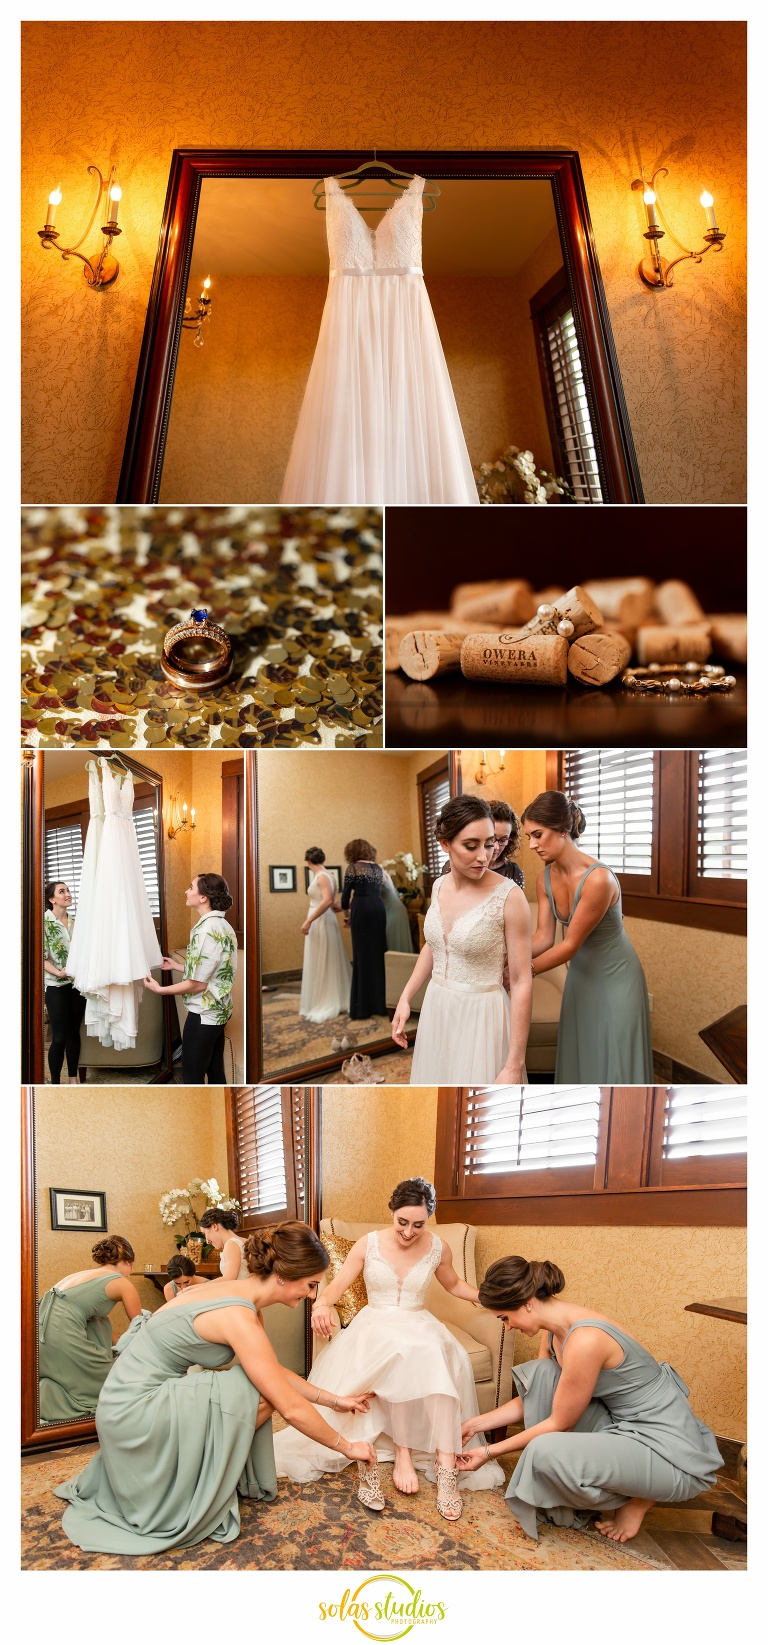 wedding at owera vineyards photography 3